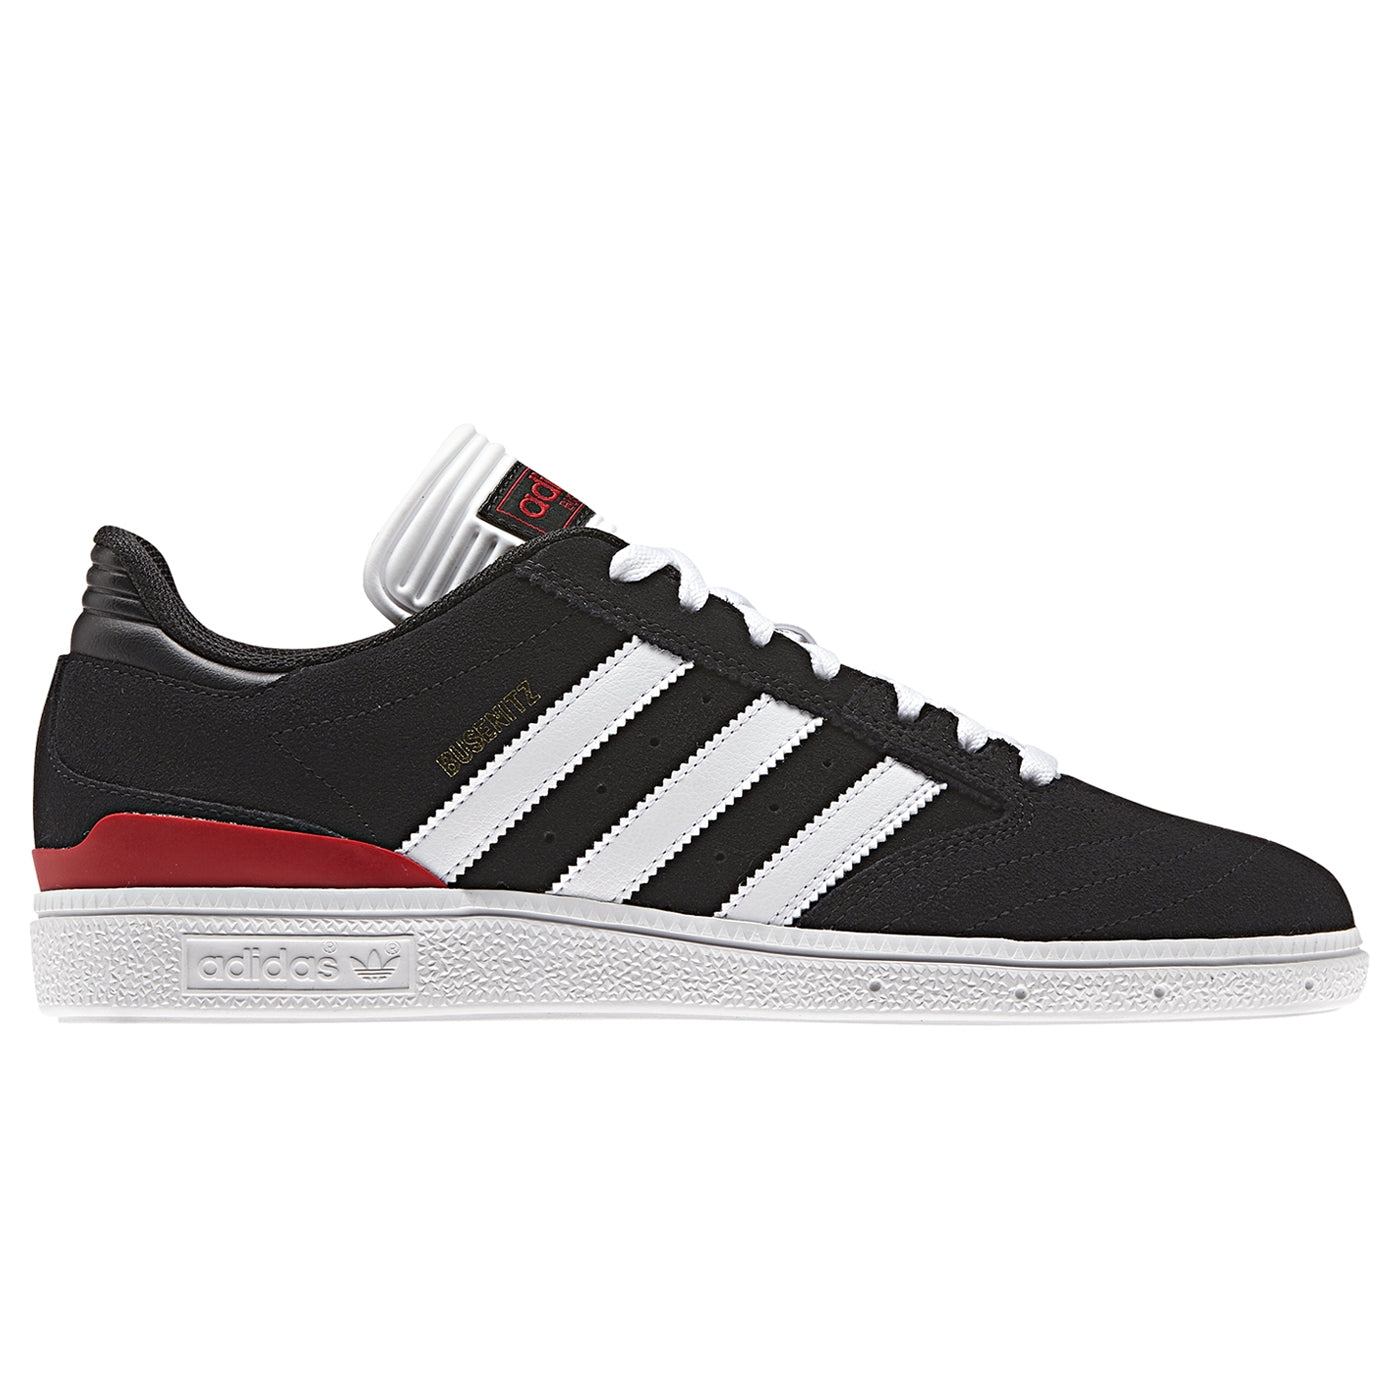 official photos 4d17f 011d4 Adidas Busenitz Shoes - Core Black  Footwear White  Scarlet